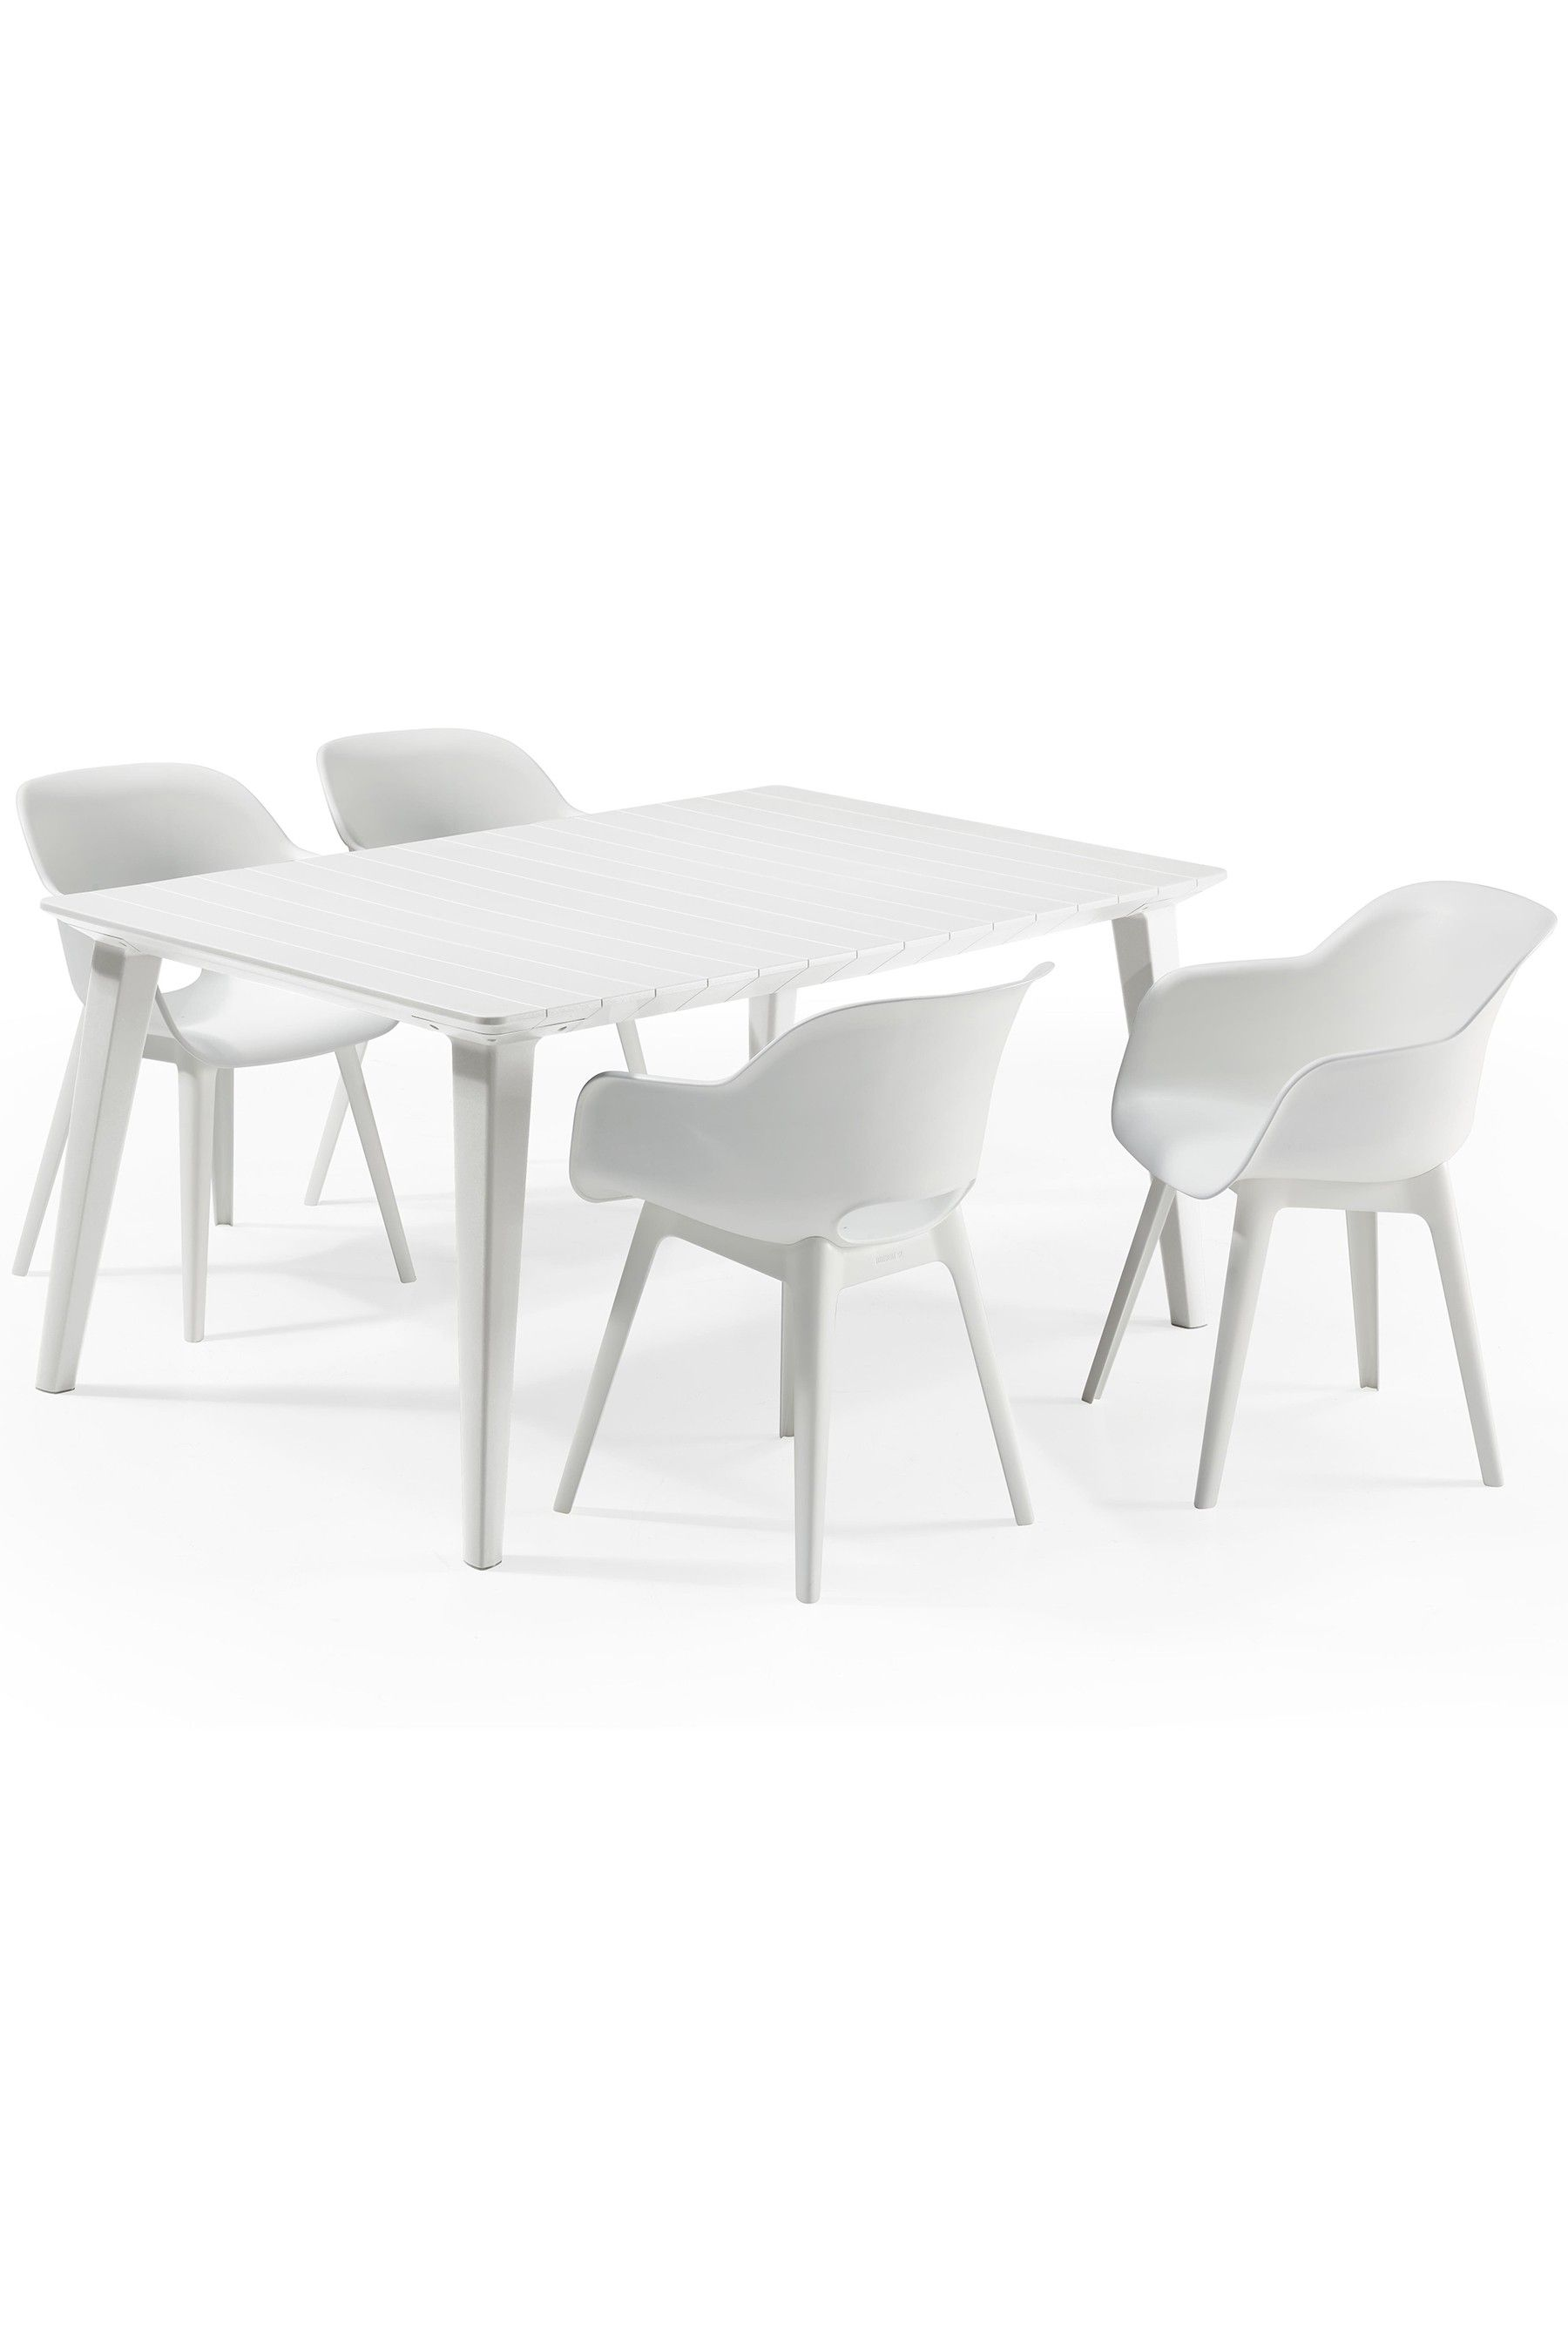 Table Basse Allibert Next Dining Table And Chair Set By Allibert White In 2019